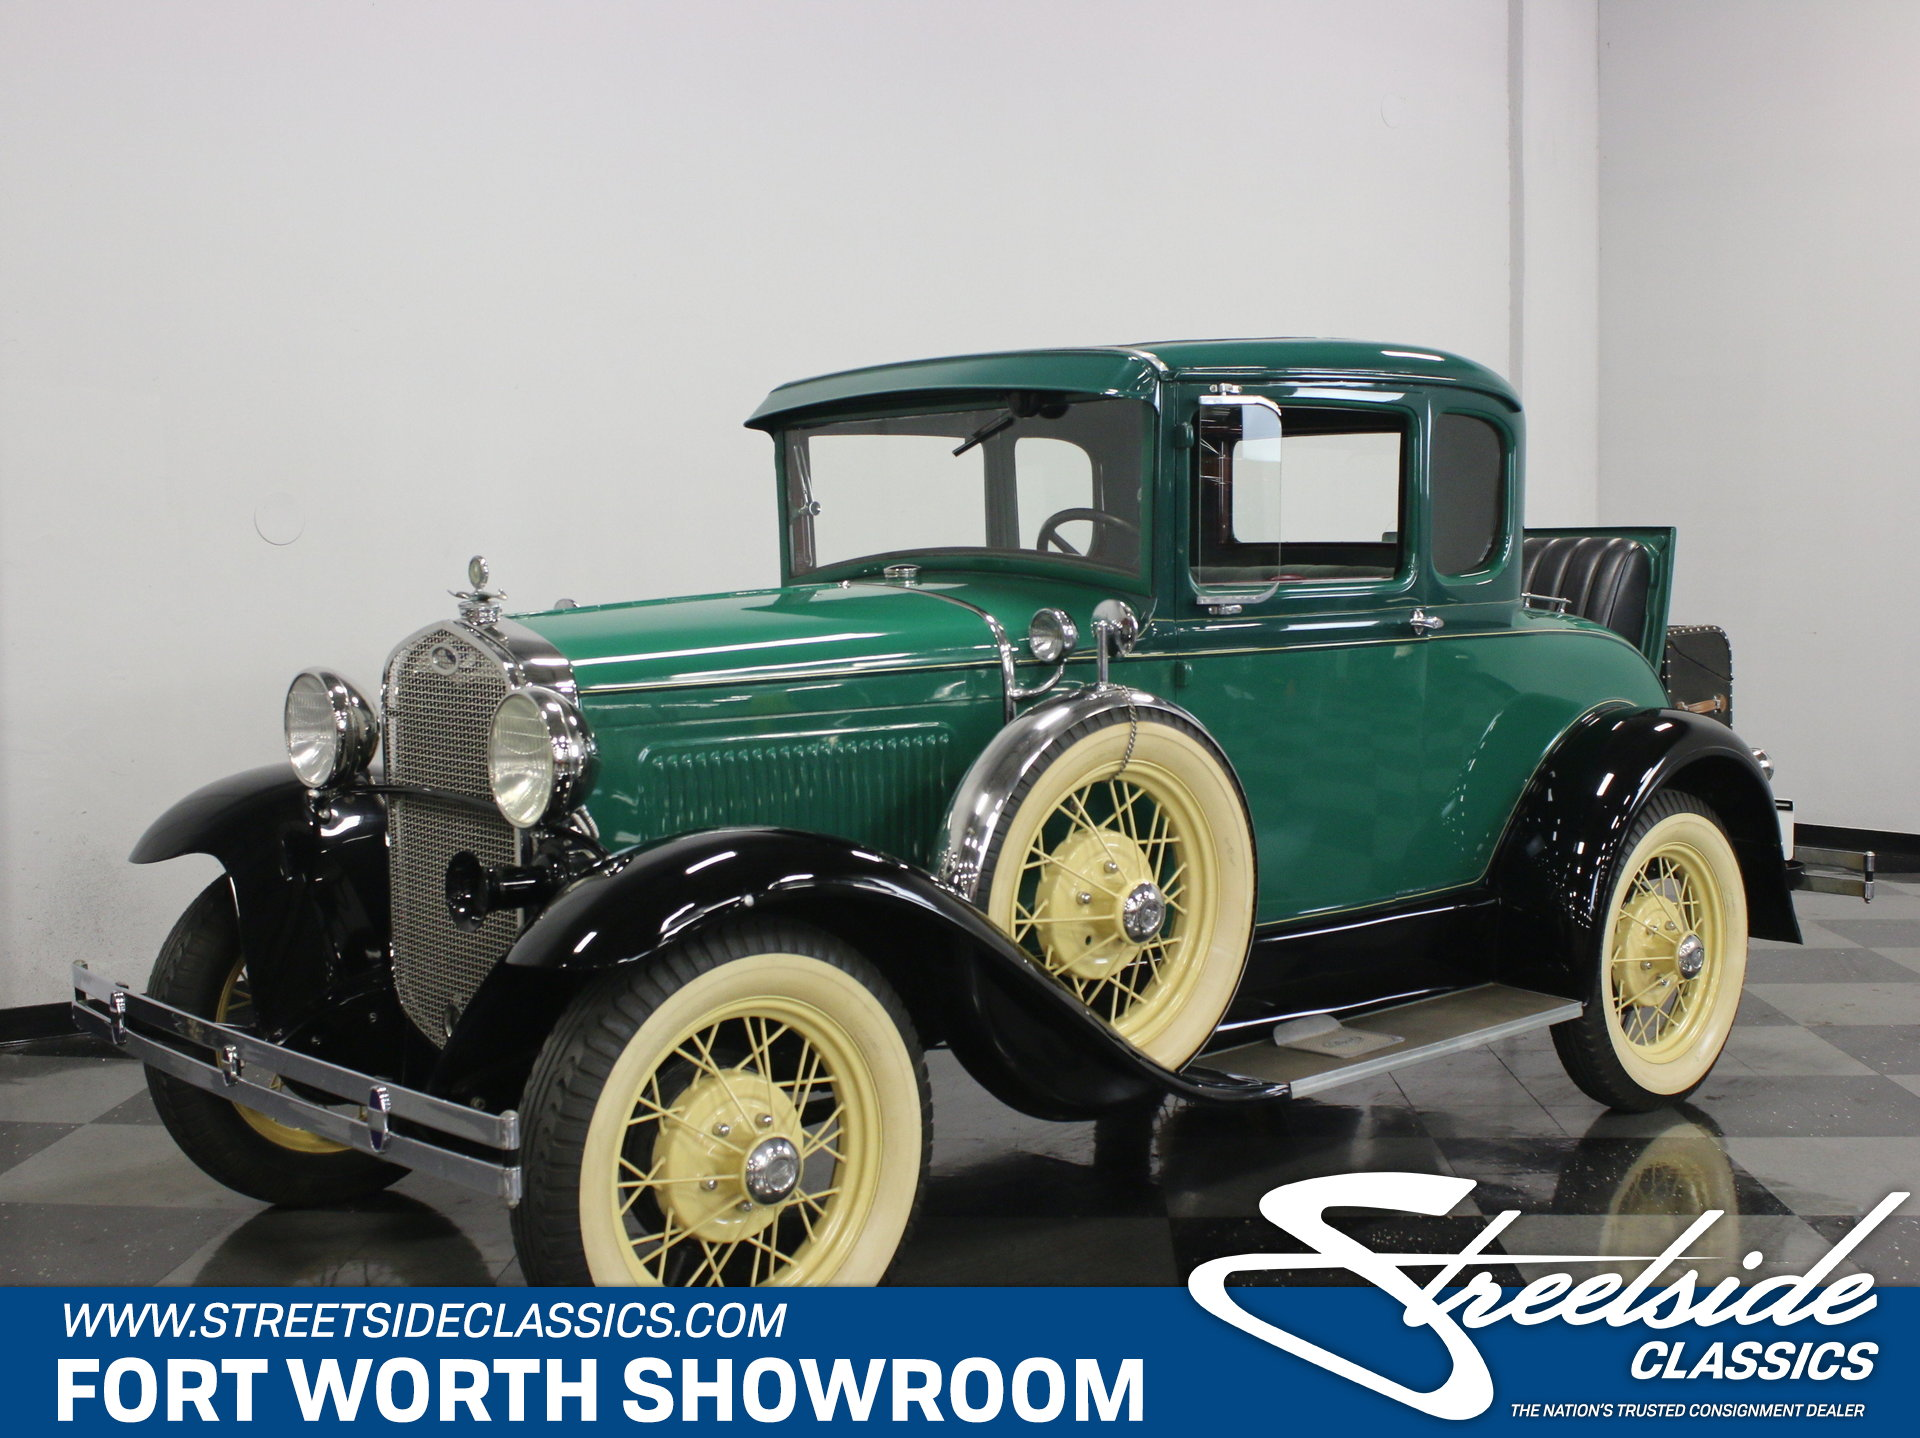 1930 Ford Model A Streetside Classics The Nation S